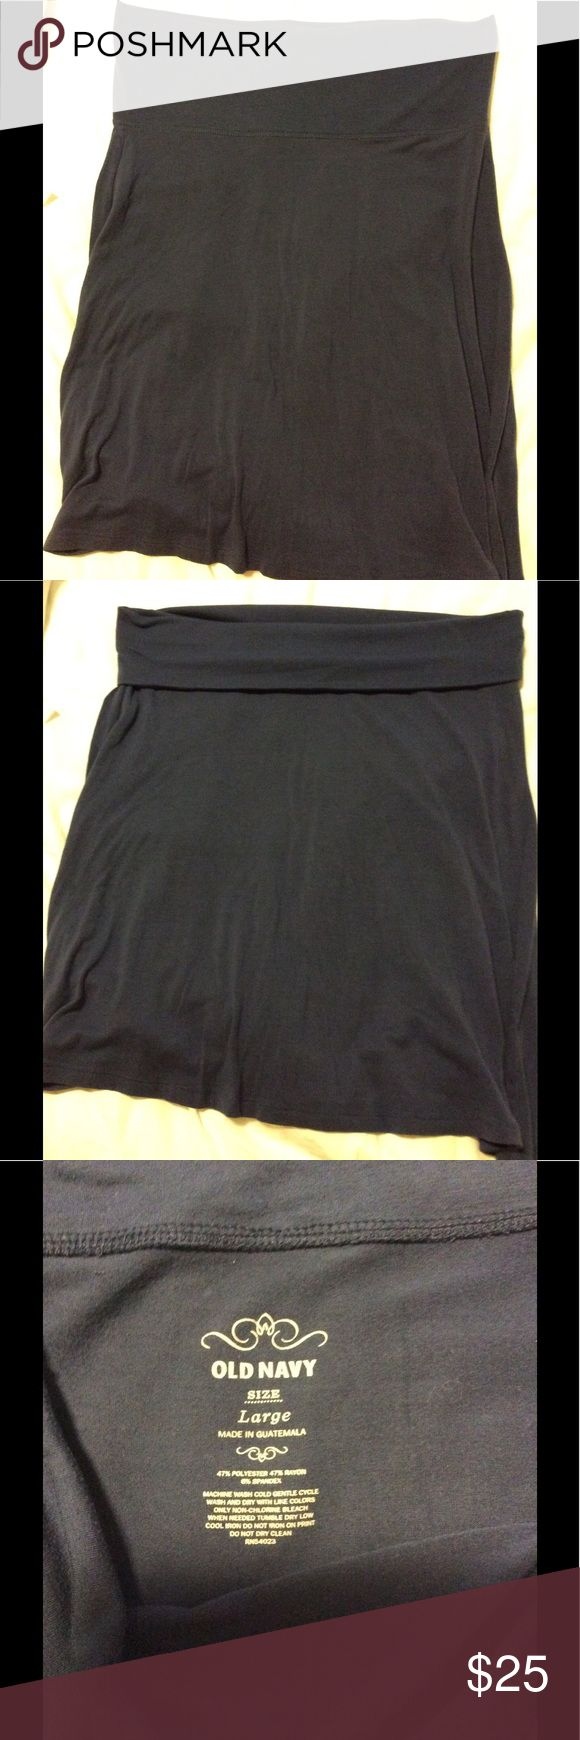 "Old Navy easy yoga skirt Old Navy pull on skirt. 23"" long. Can fold down, or not! Old Navy Skirts"